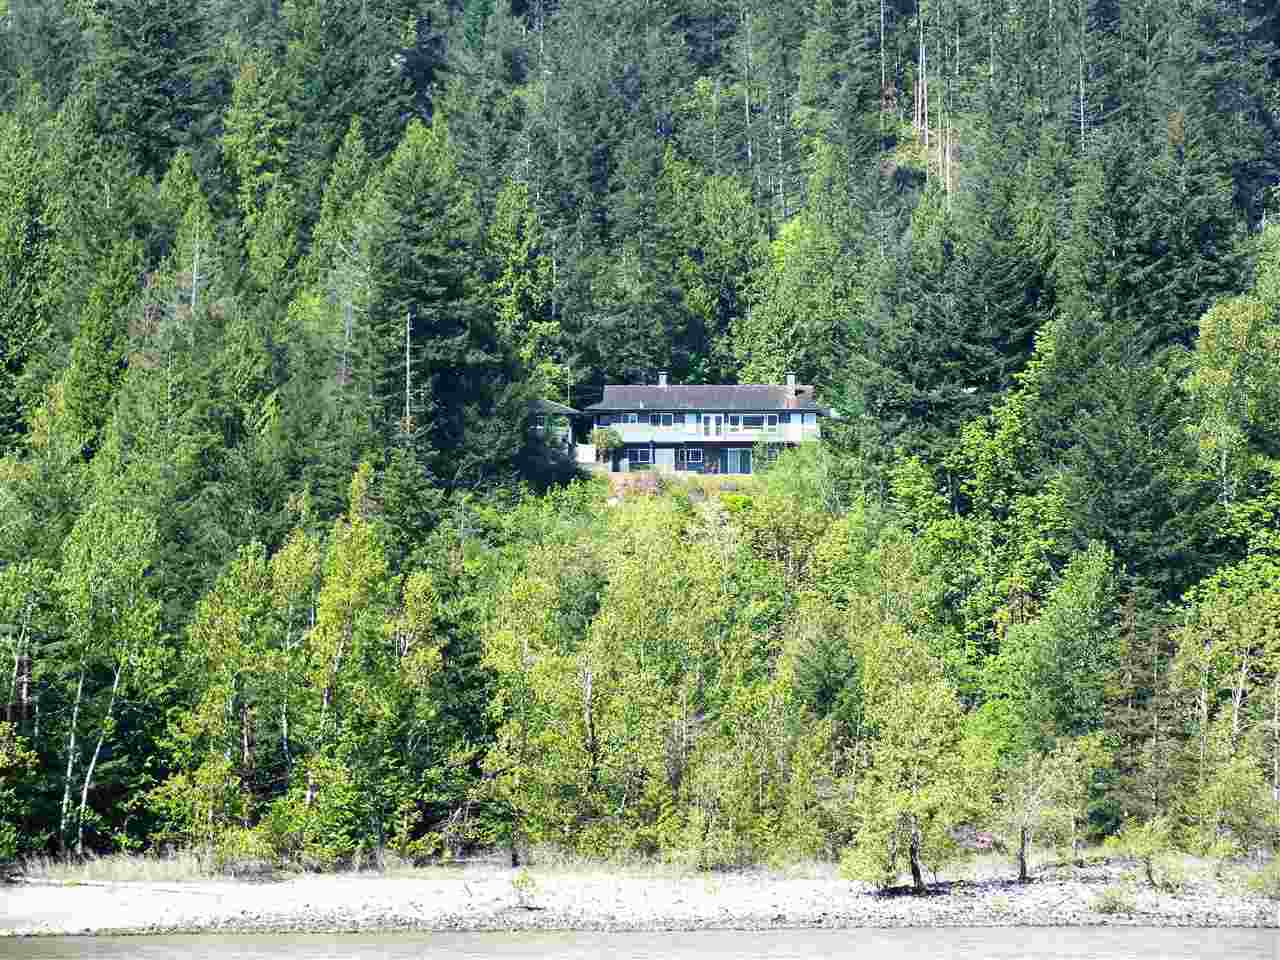 1430 sq. ft. rancher w/ full walkout basement on 2.68 acre river front lot. Home perched above spectacular Fraser River and enjoys world class views of surrounding valleys & Town of Hope as well. Detached single garage, 28 x 32 industrial shop, large garden area & plenty of yard all on this one of a kind beautiful property. Enjoy Salmon fishing just out your back door.